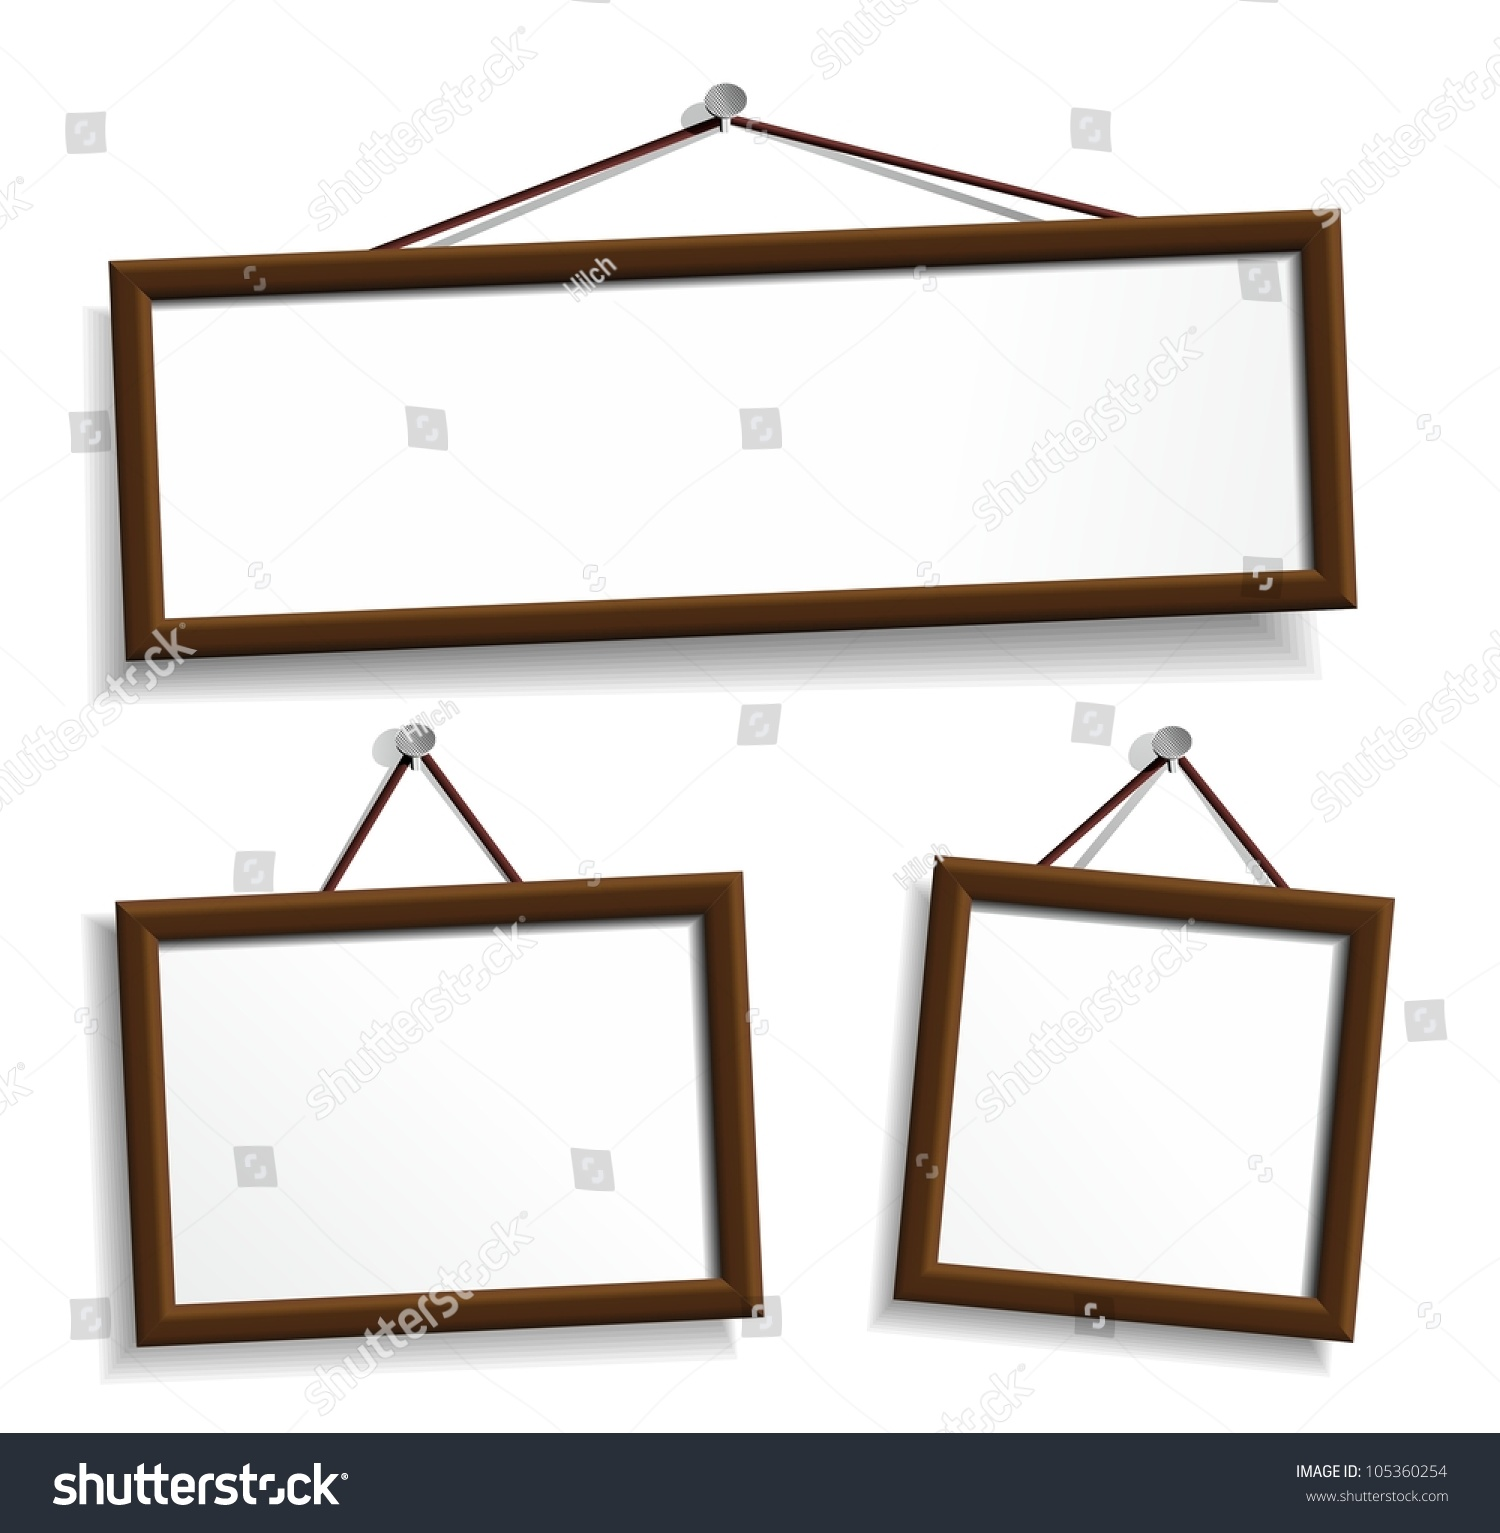 Wooden Frames Hanging On A Nails Vector Design Elements